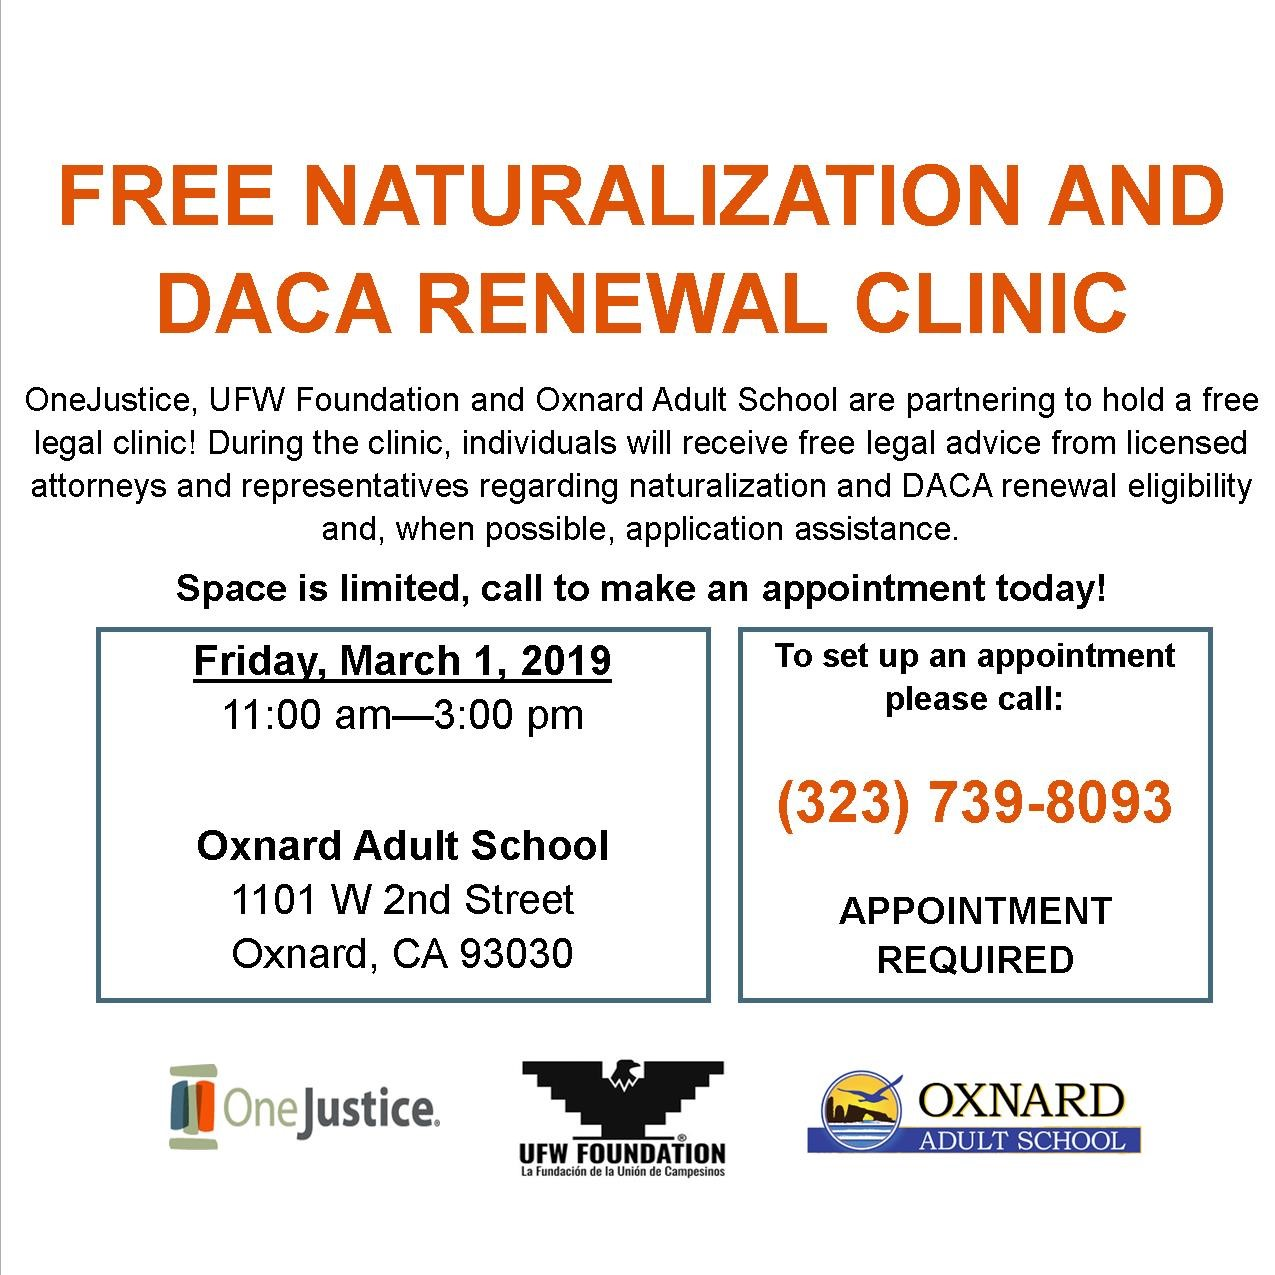 Bilingual report: Free Naturalization and DACA Renewal Legal Clinic to be held March 1 in Oxnard